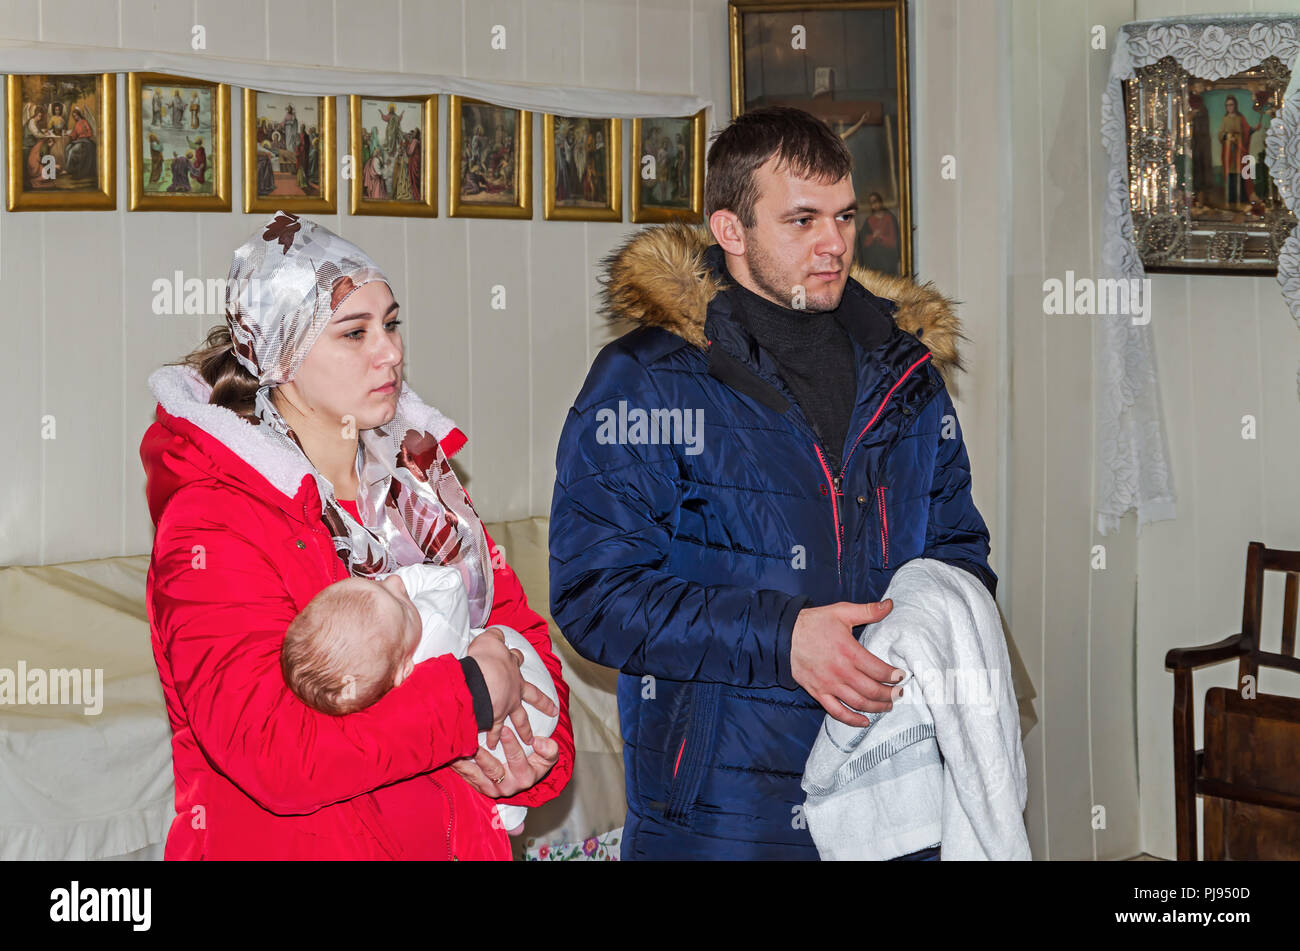 Godfather and godmother are keep in arms of child during the rite of christening in the Orthodox Church - Stock Image